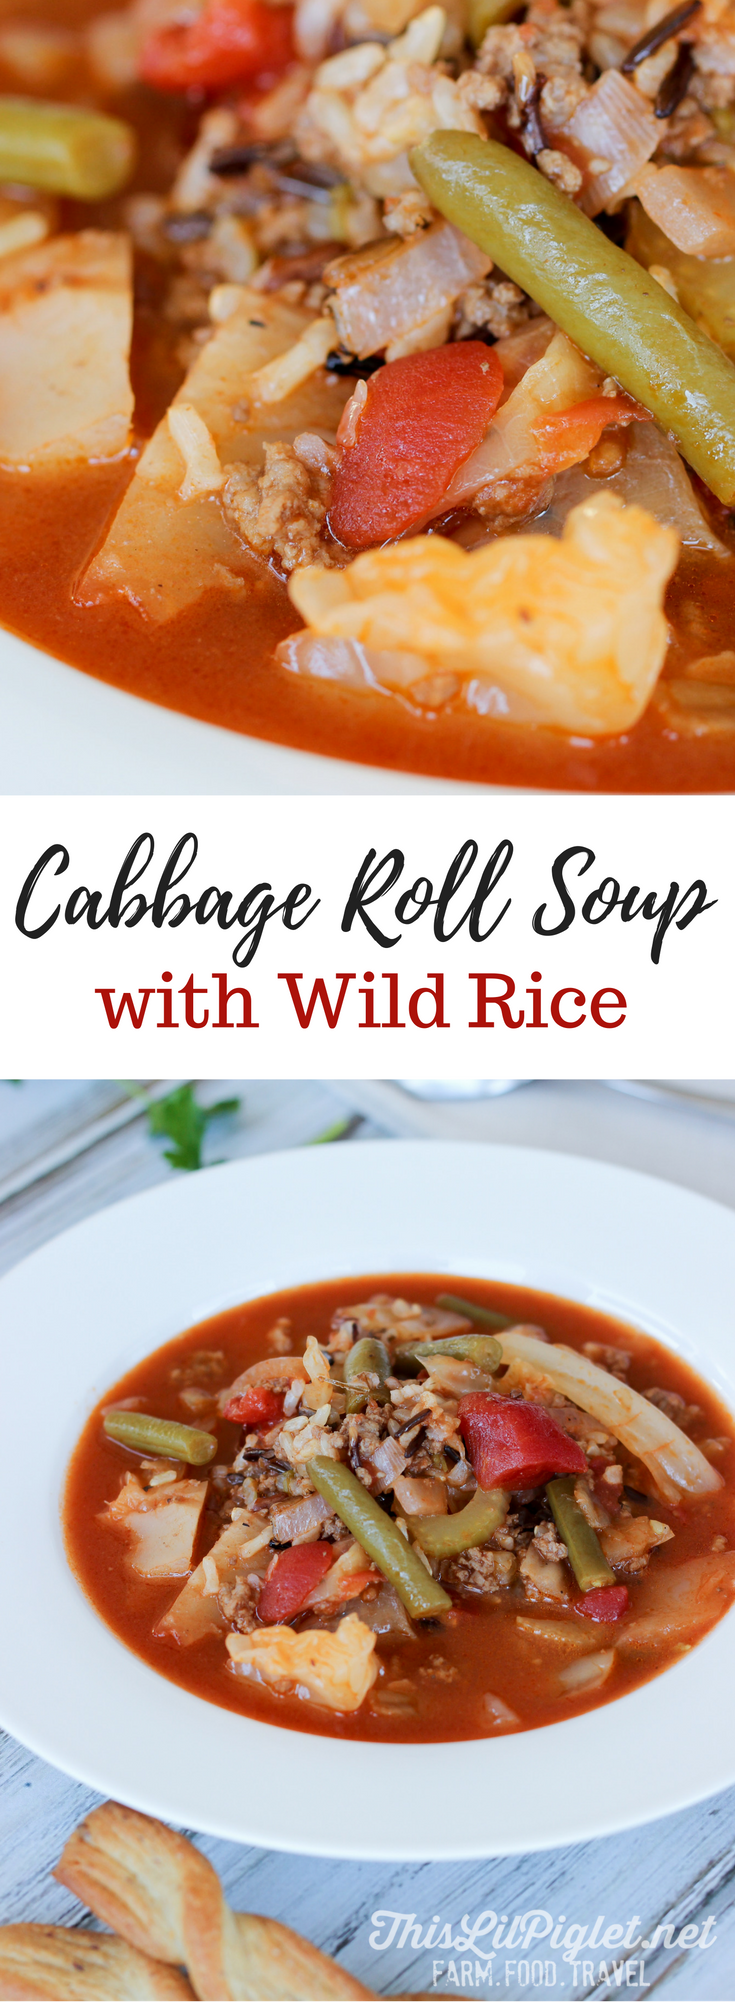 Cabbage Roll Soup and Wild Rice // via @thislilpiglet